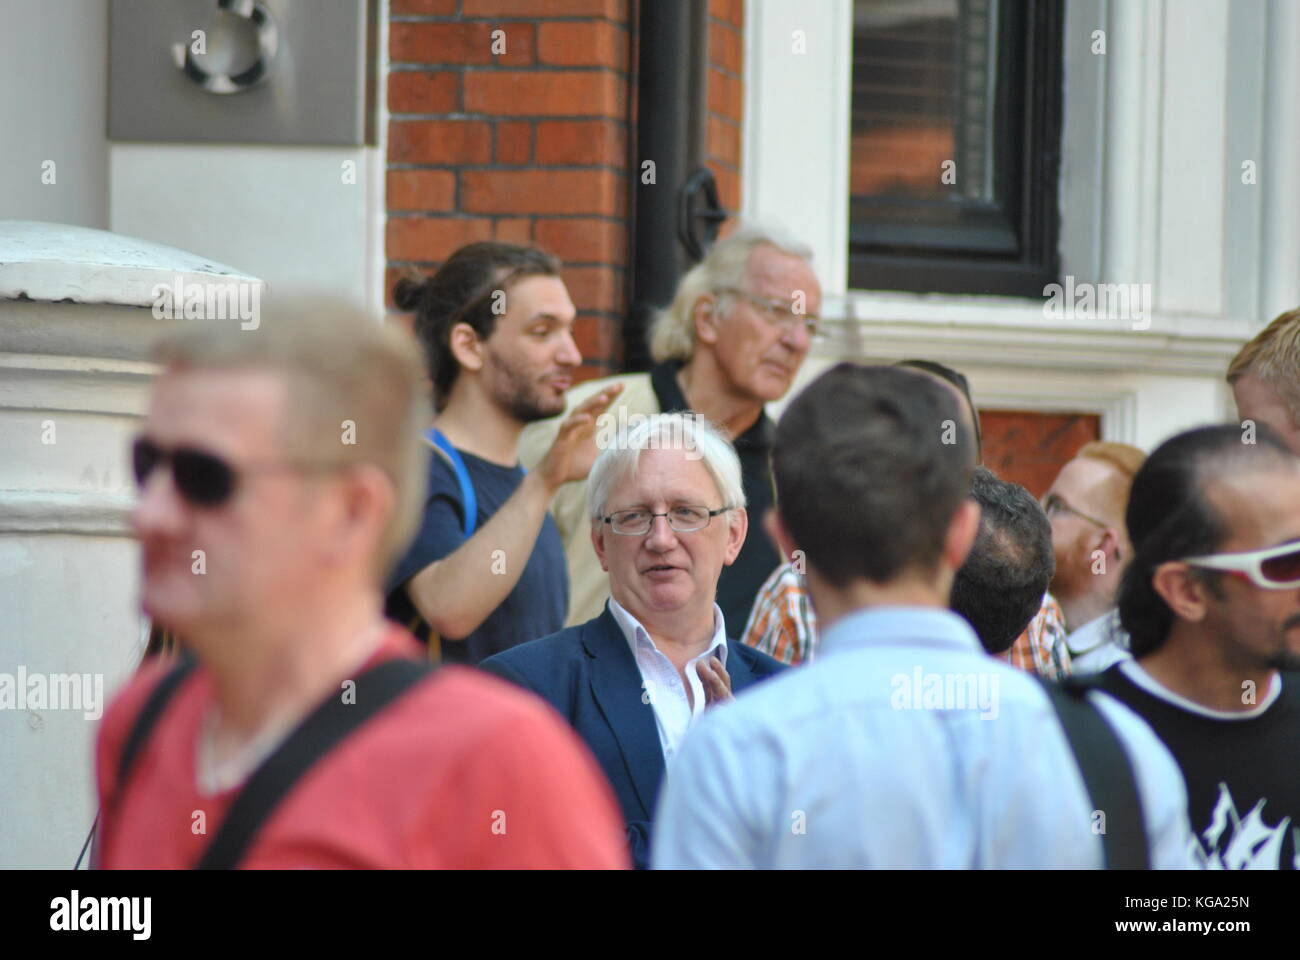 Craig Murray former Ambassador to Britain, in court accused of libel charges against Jake Wallis Simons, he is a - Stock Image